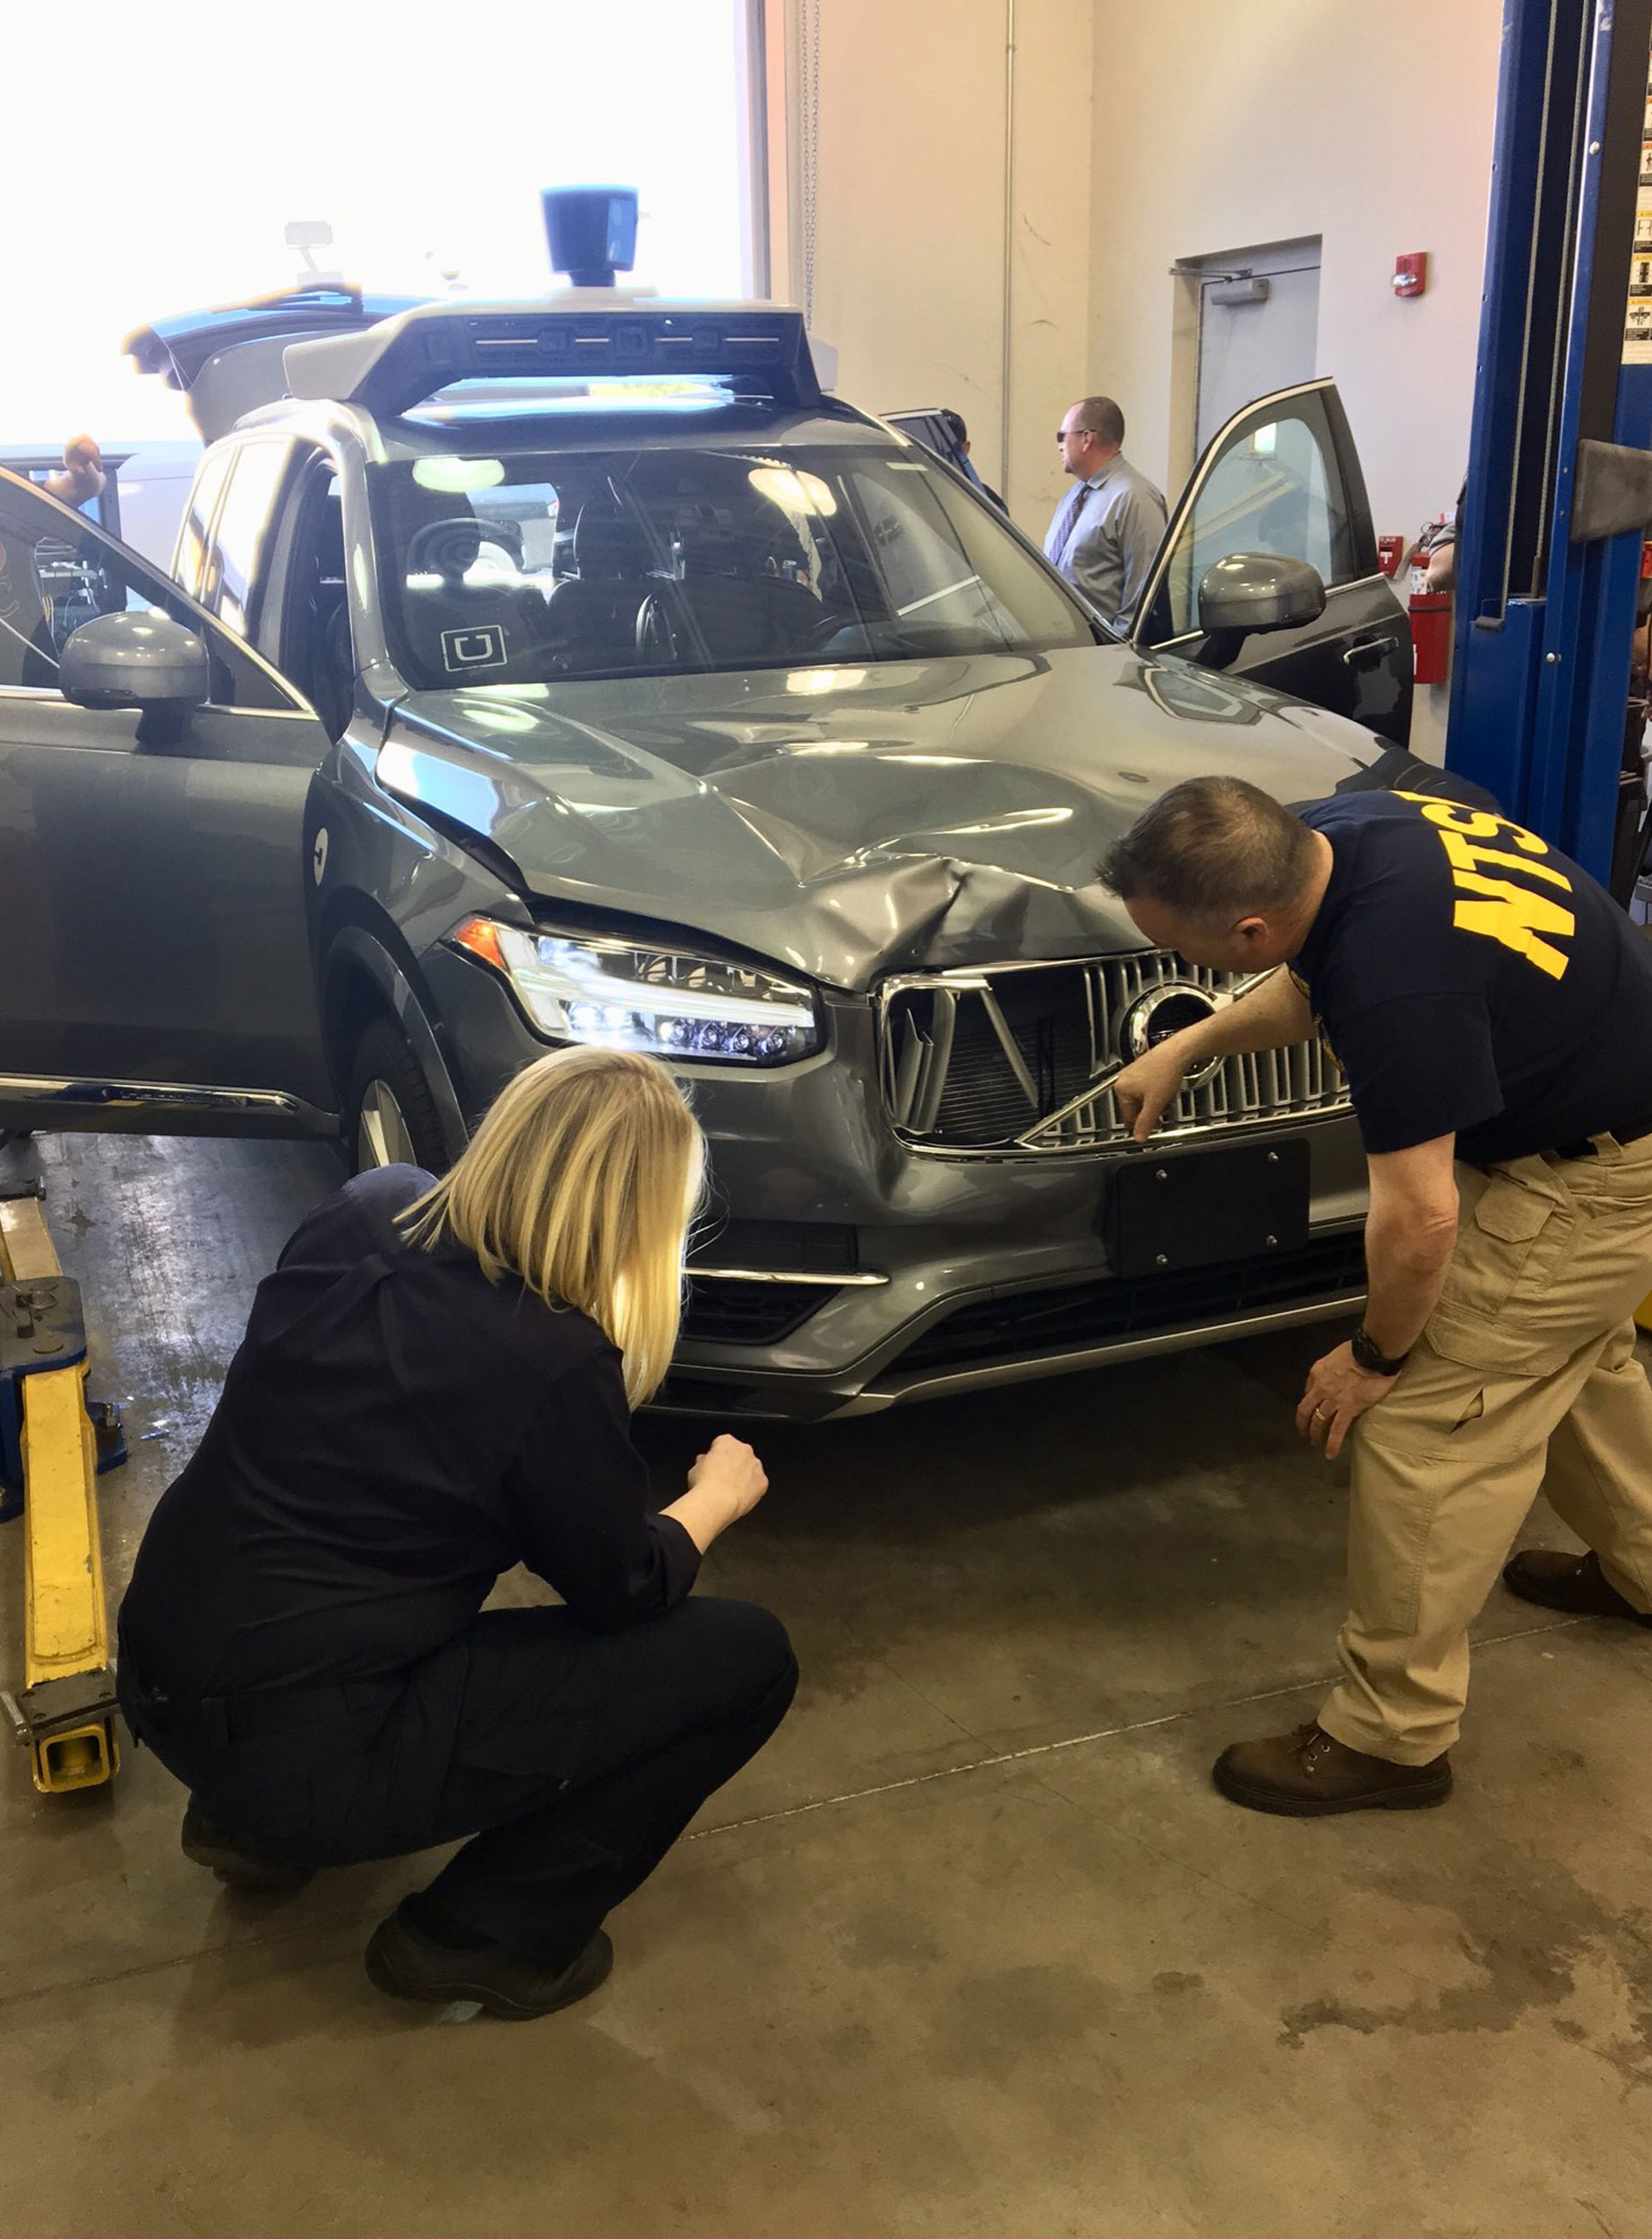 National Transportation Safety Board (NTSB) investigators examine a self-driving Uber vehicle involved in a fatal accident in Tempe, Arizona, U.S., March 20, 2018.